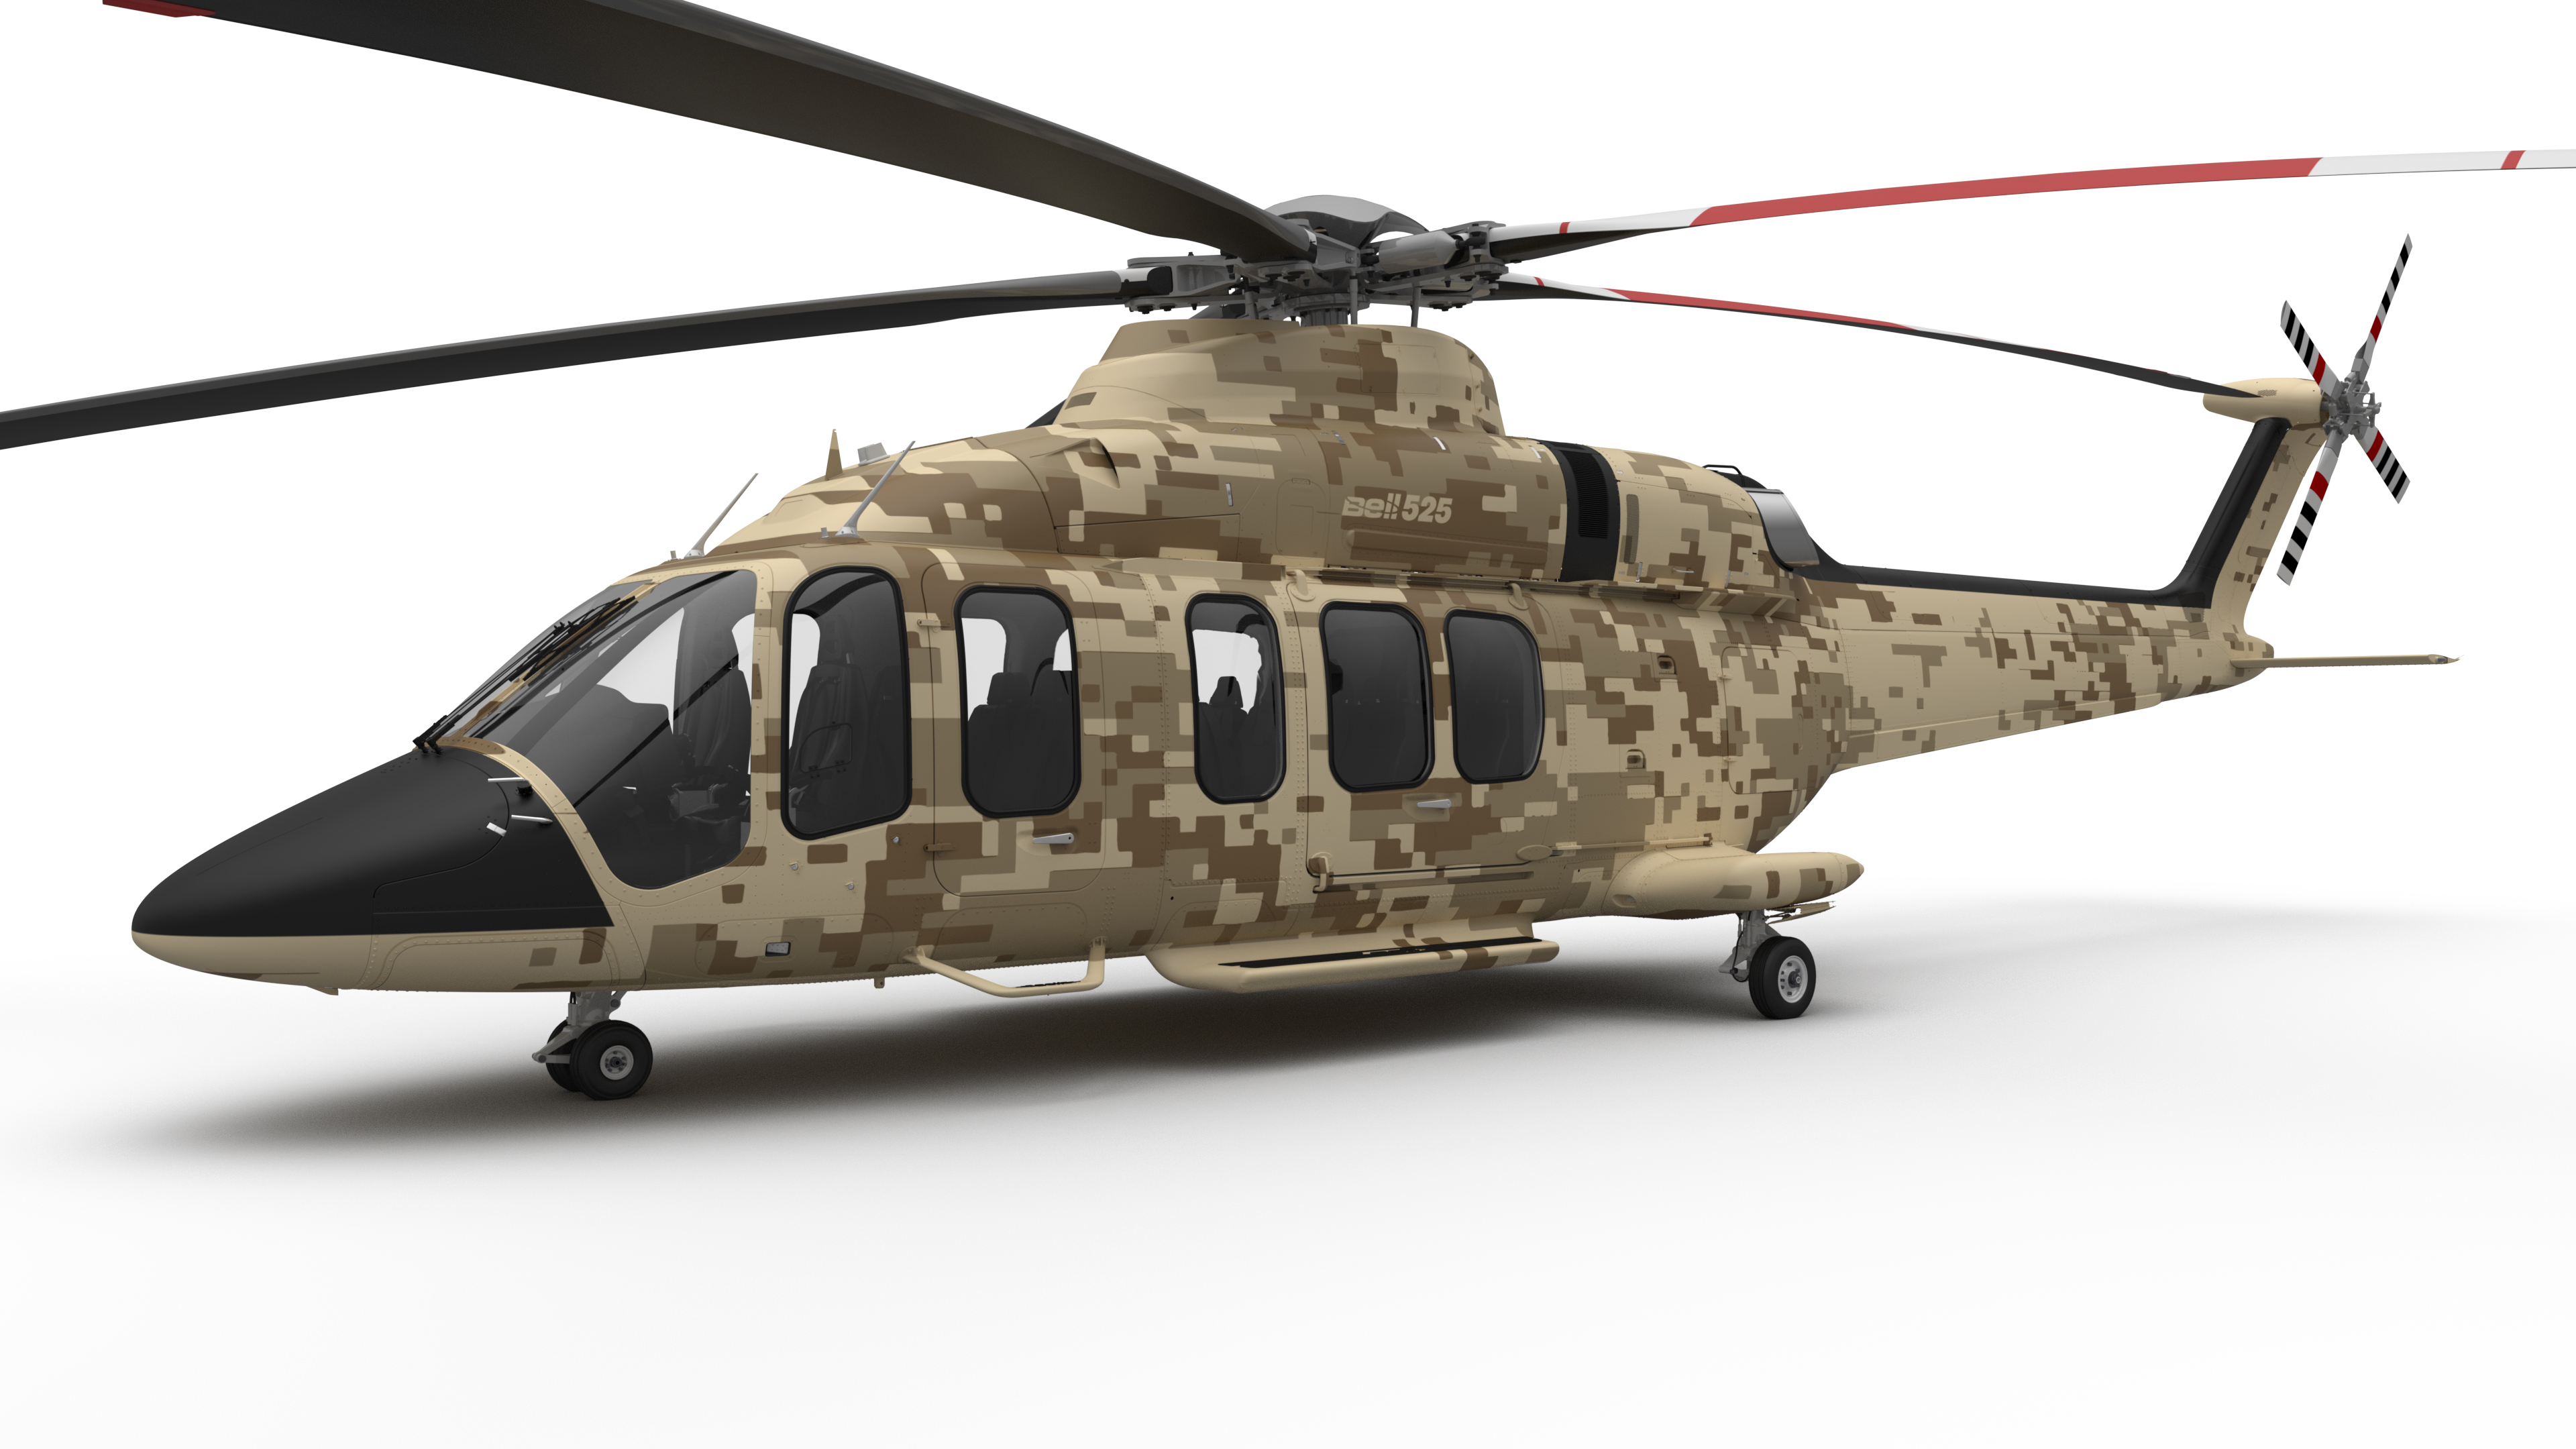 Bell 525 military